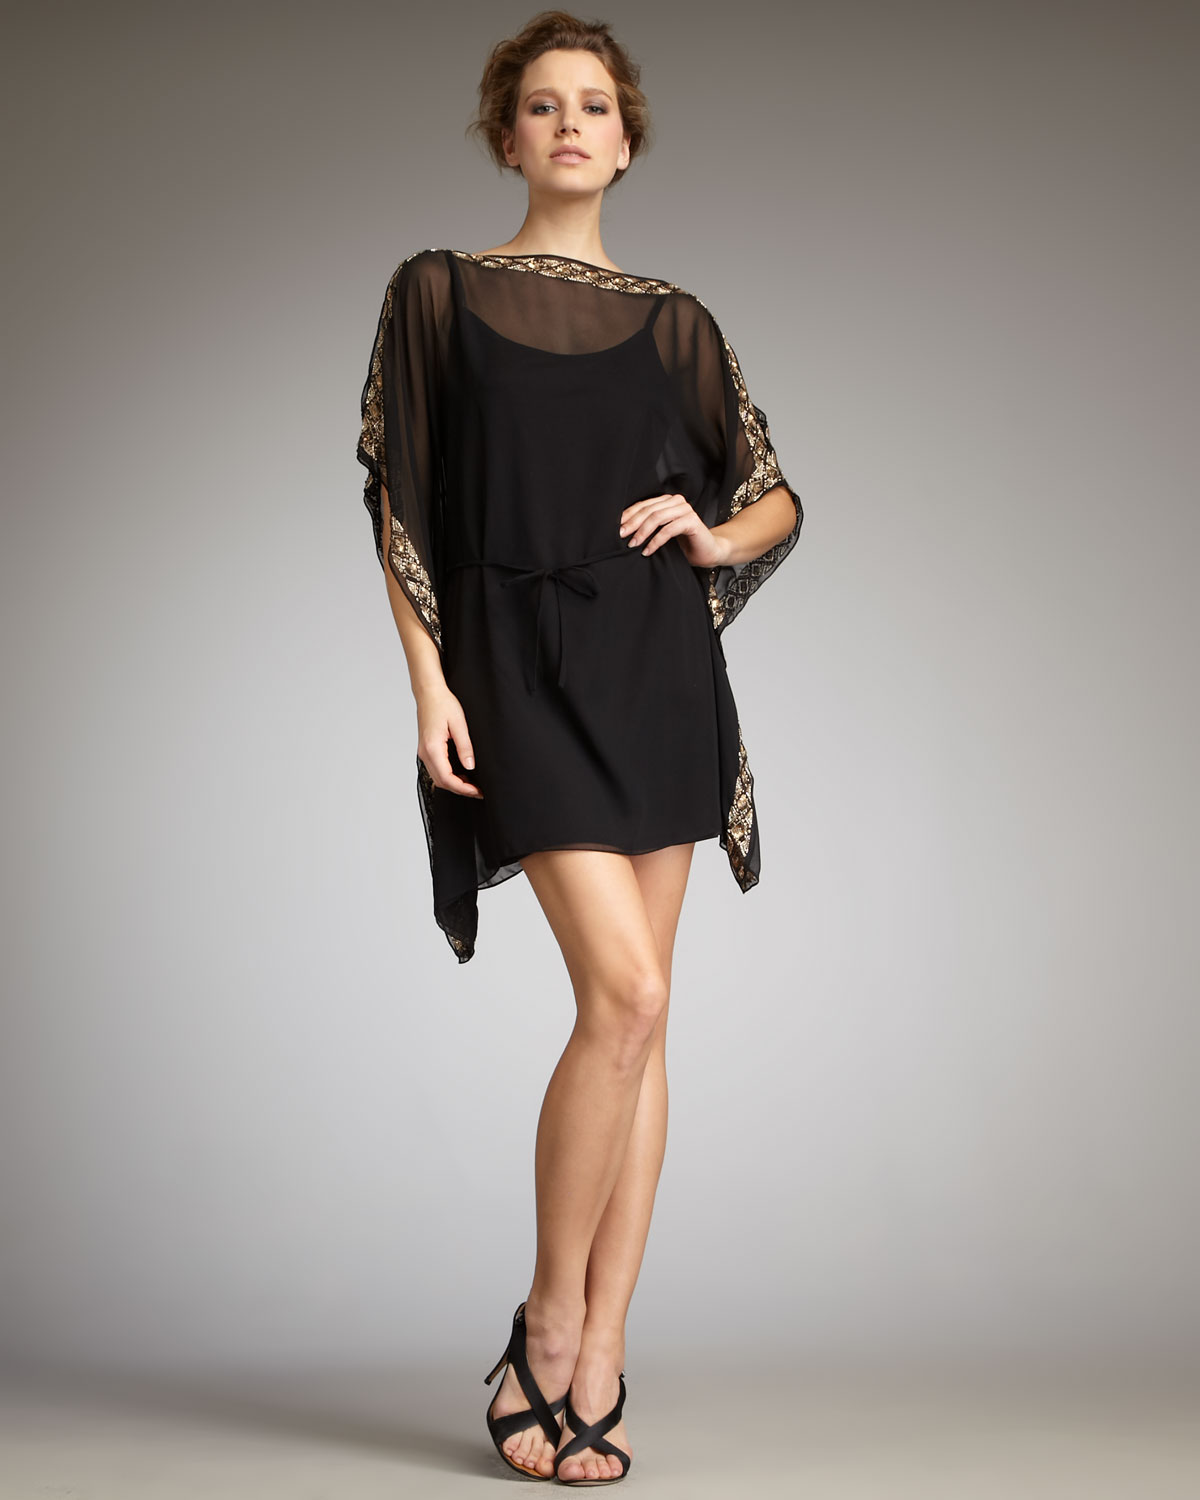 Black dress neiman marcus - Gallery Previously Sold At Neiman Marcus